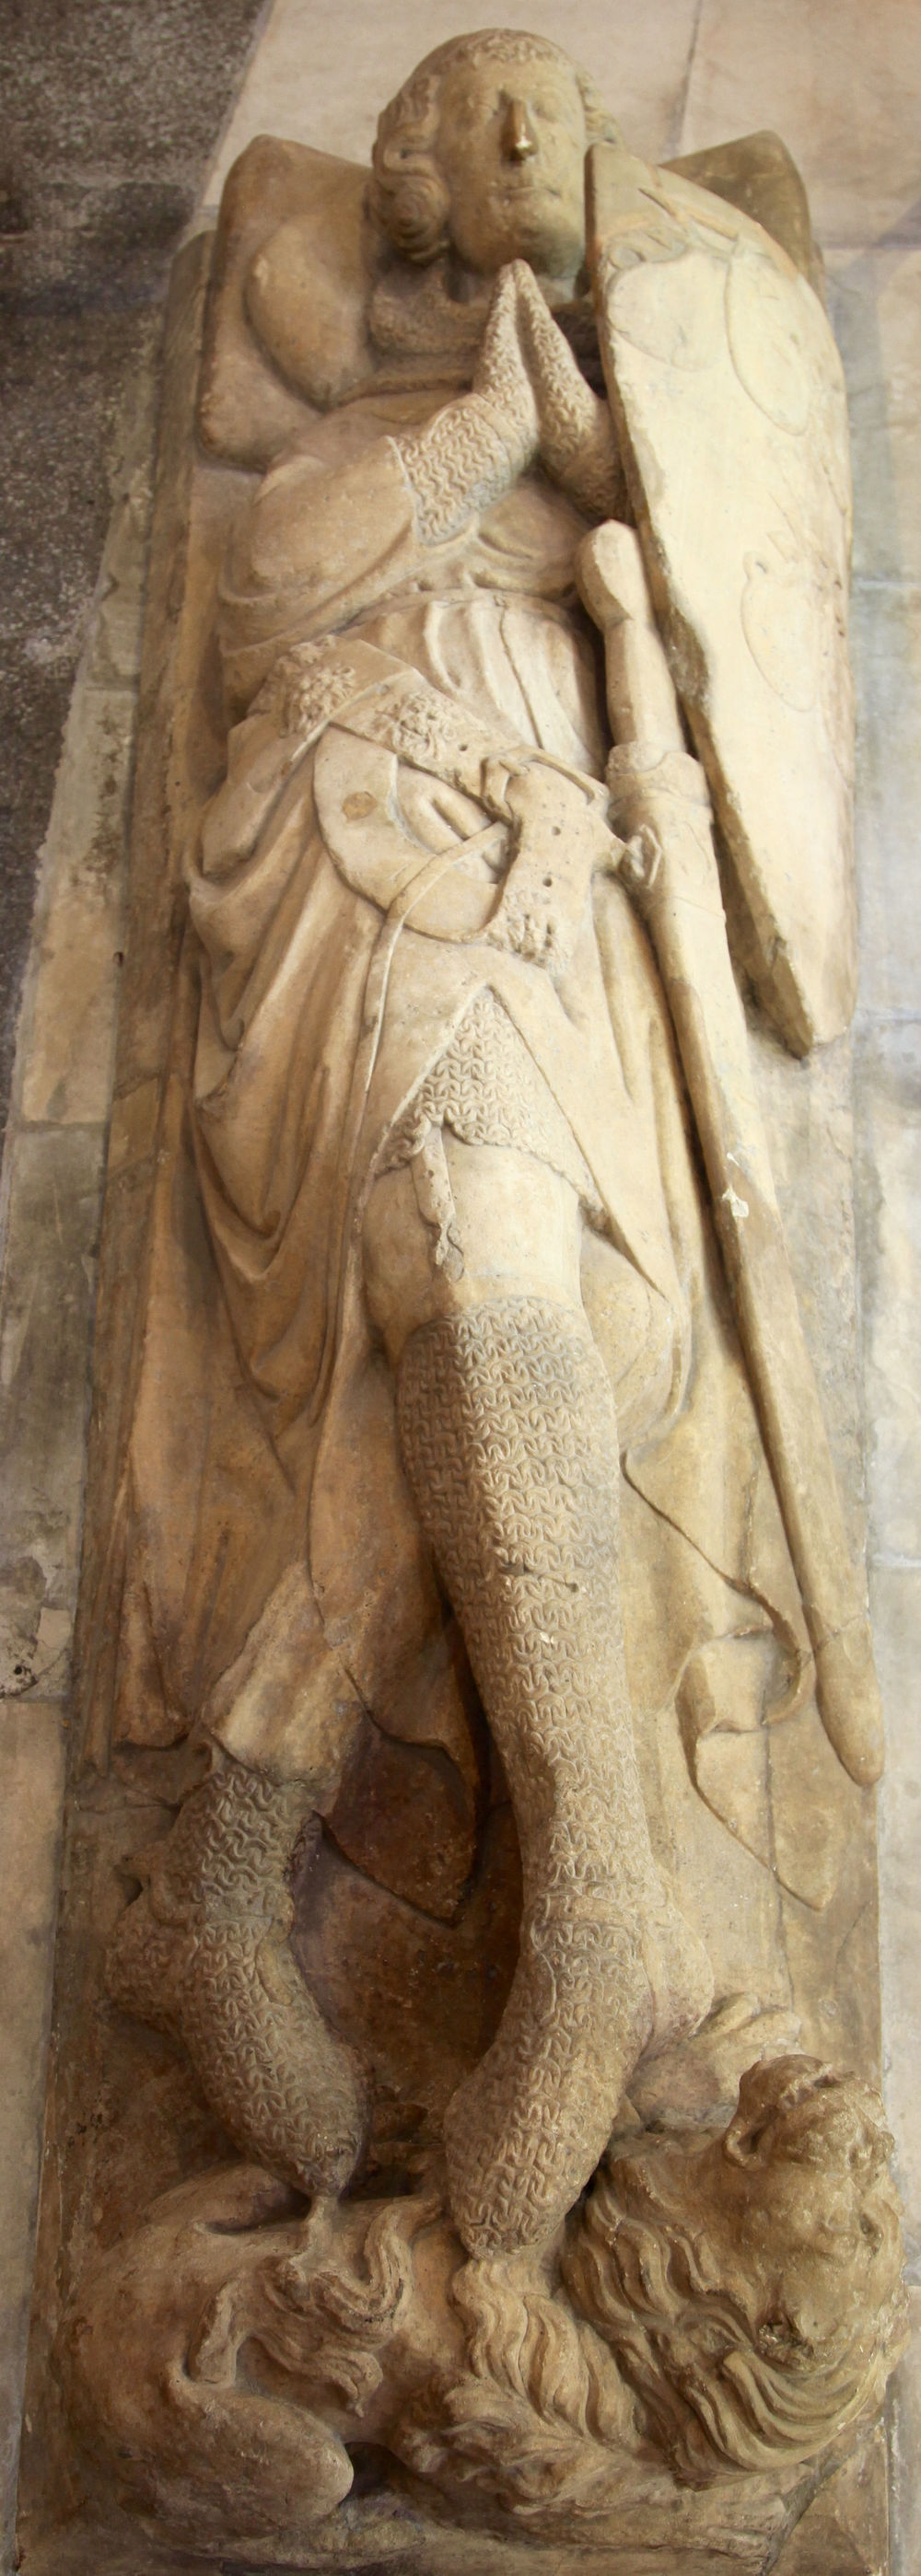 Effigy of a Templar knight in the Temple Church, London